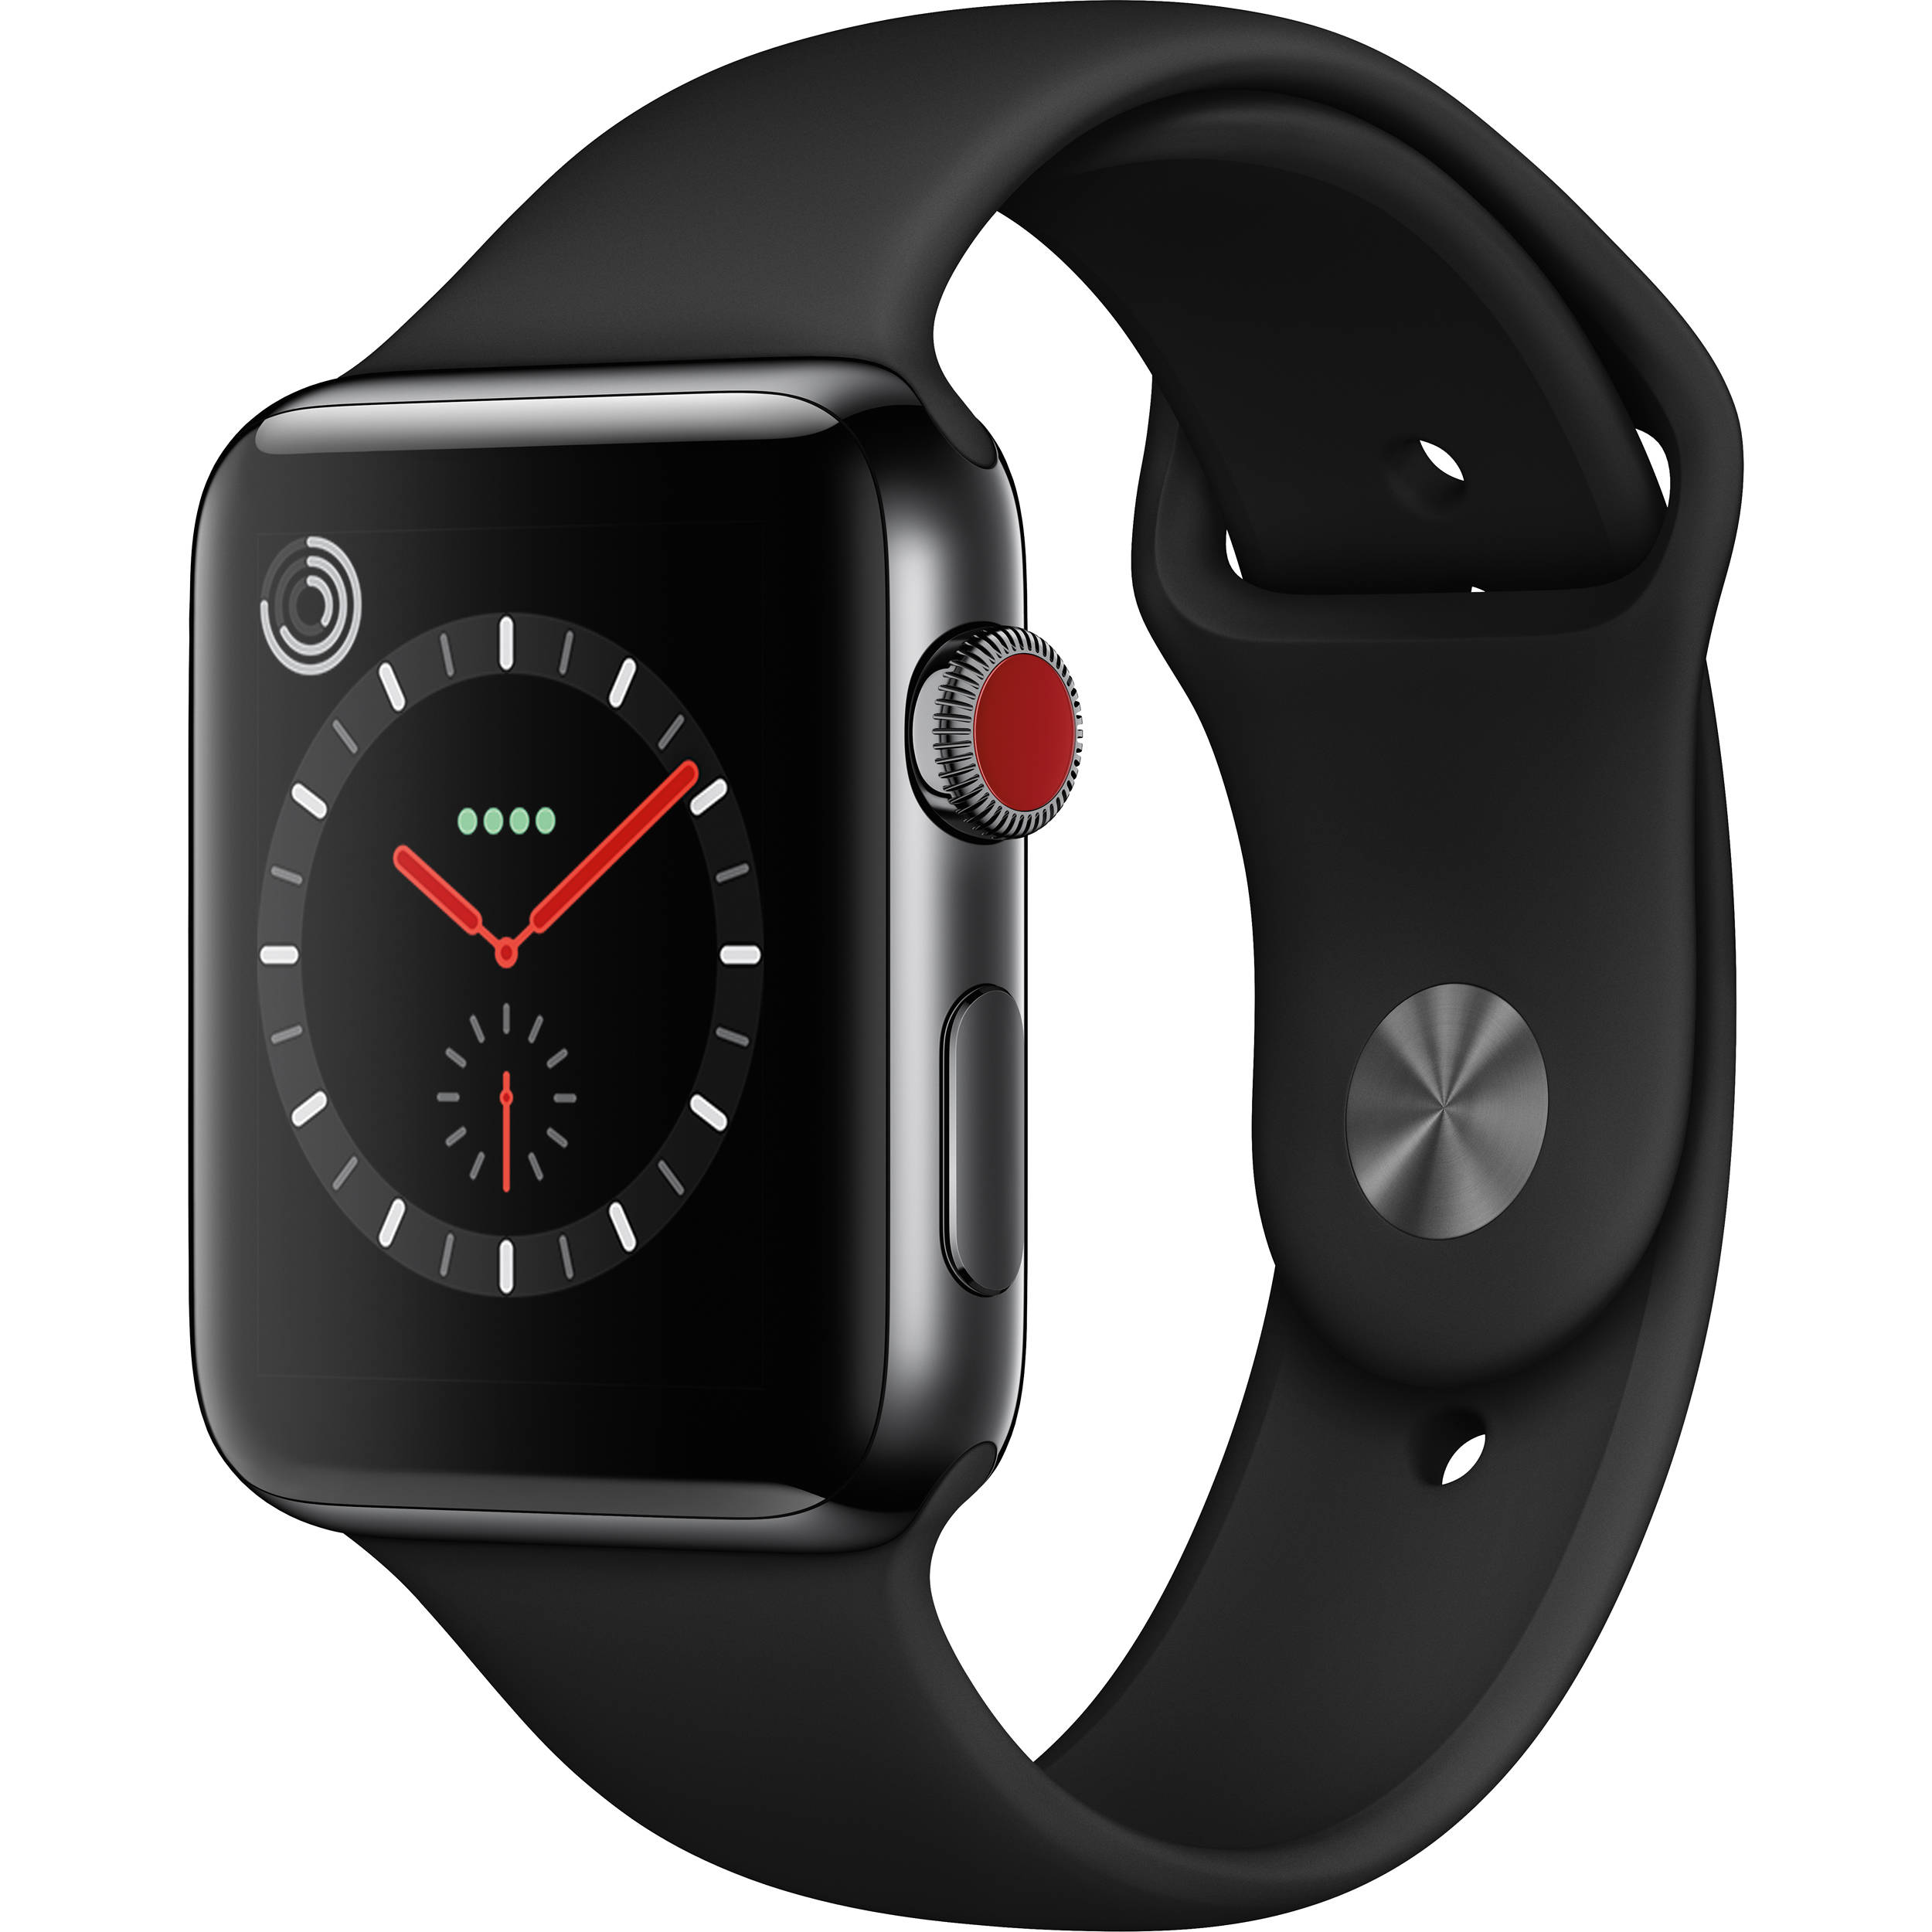 buy online 12ace 47c31 Apple Watch Series 3 42mm Smartwatch (GPS + Cellular, Space Black Stainless  Steel Case, Black Sport Band)